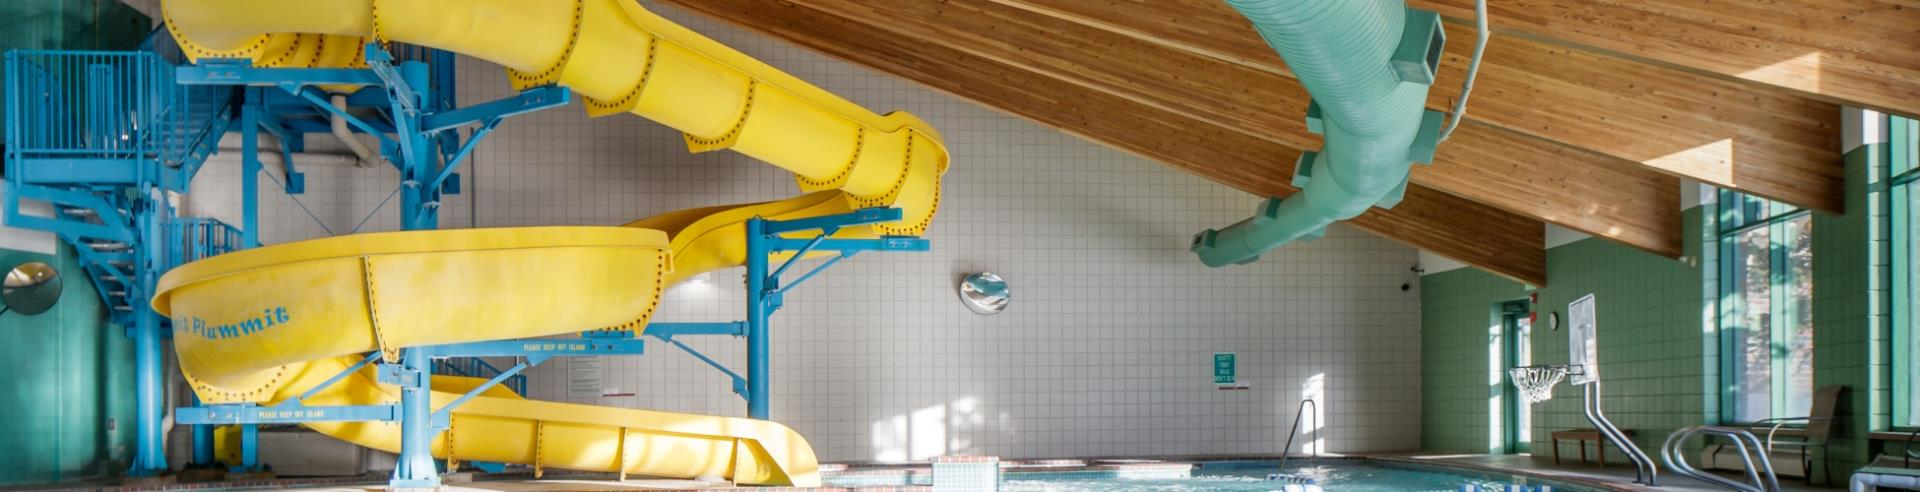 Breckenridge Recreation Center pool with yellow water slide